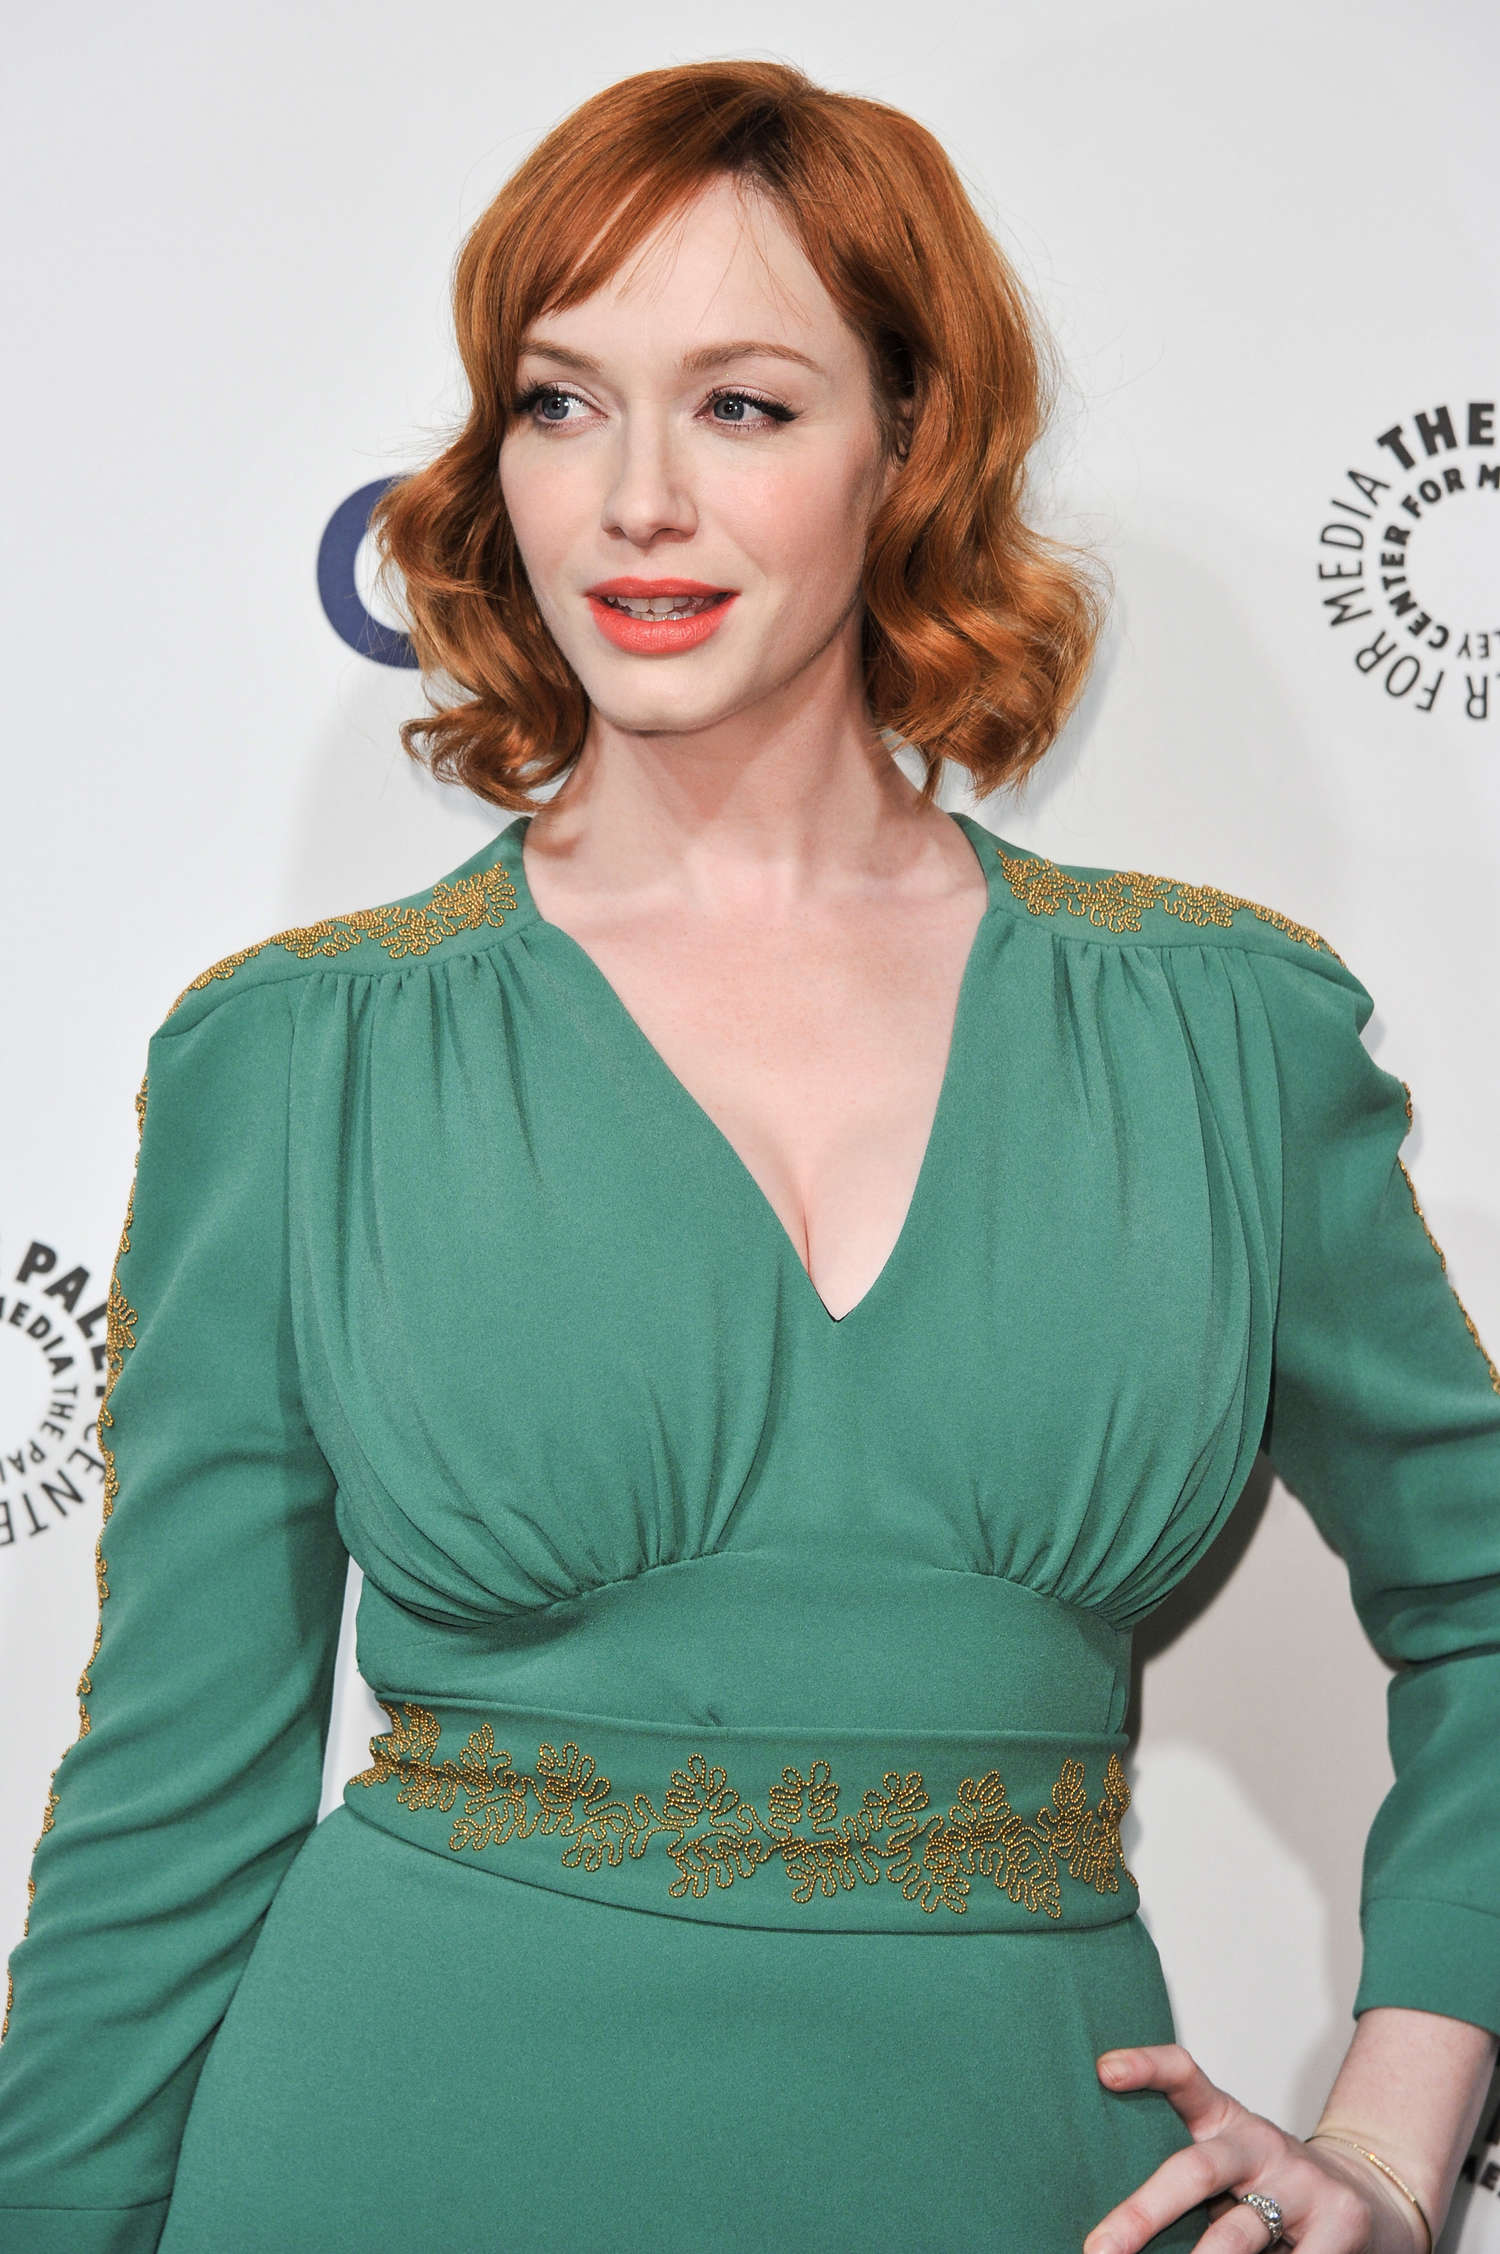 hendricks men (cbs) with all the attention emmy nominee christina hendricks has been getting for being gorgeous, you might have thought designers were fighting to get her to wear one of their dresses to the emmys not so the curvaceous mad men star, voted sexiest woman alive by esquire, last week told the uk's.